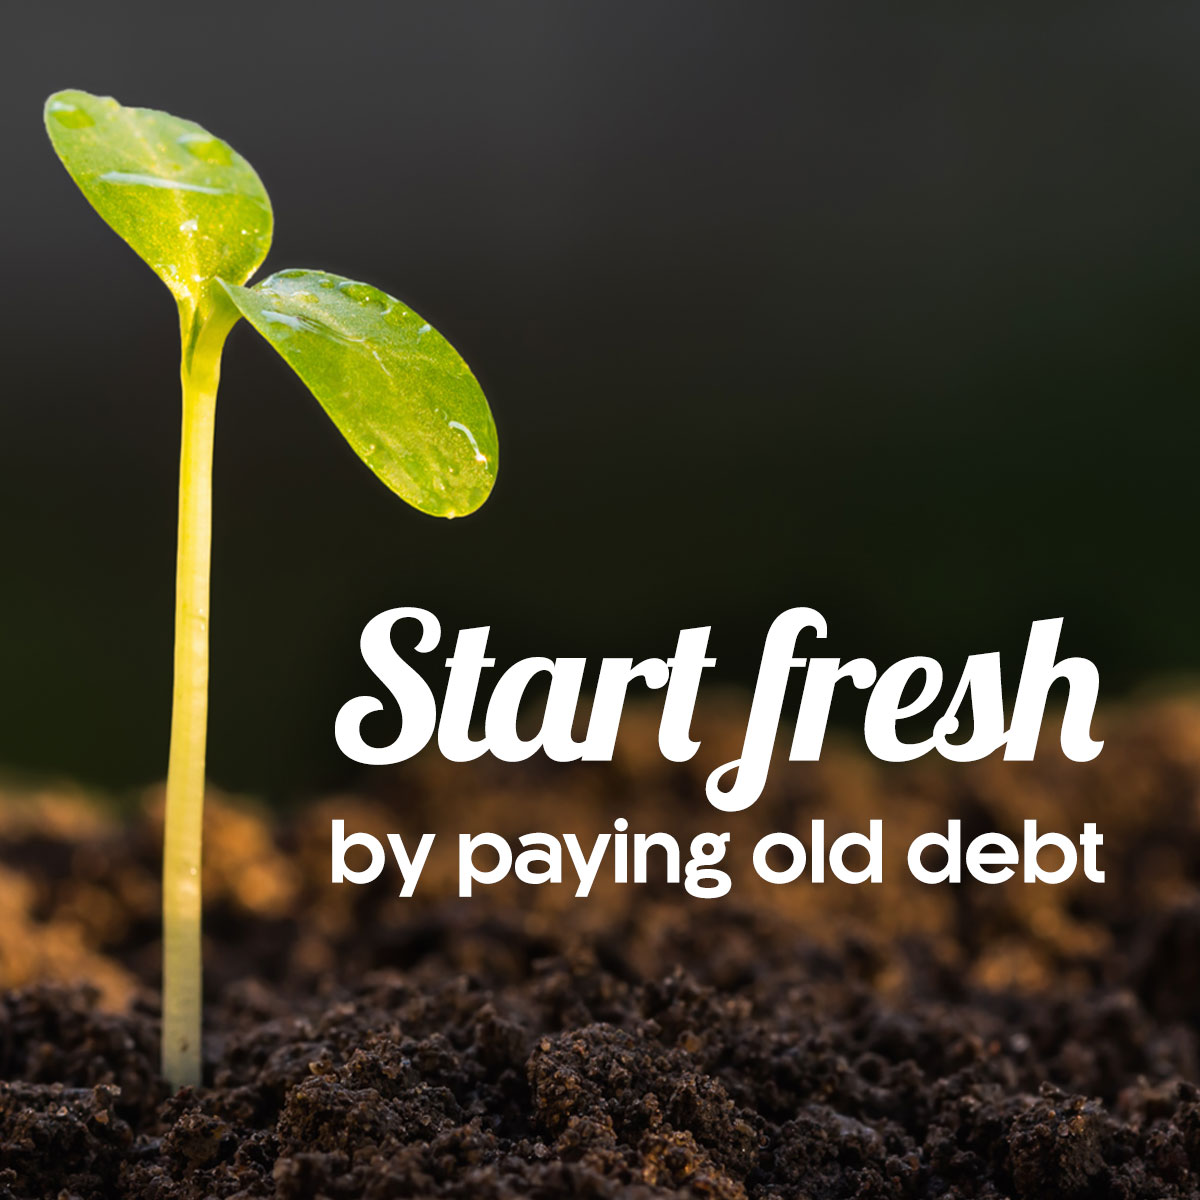 Get a Fresh Start by Paying Old Debt